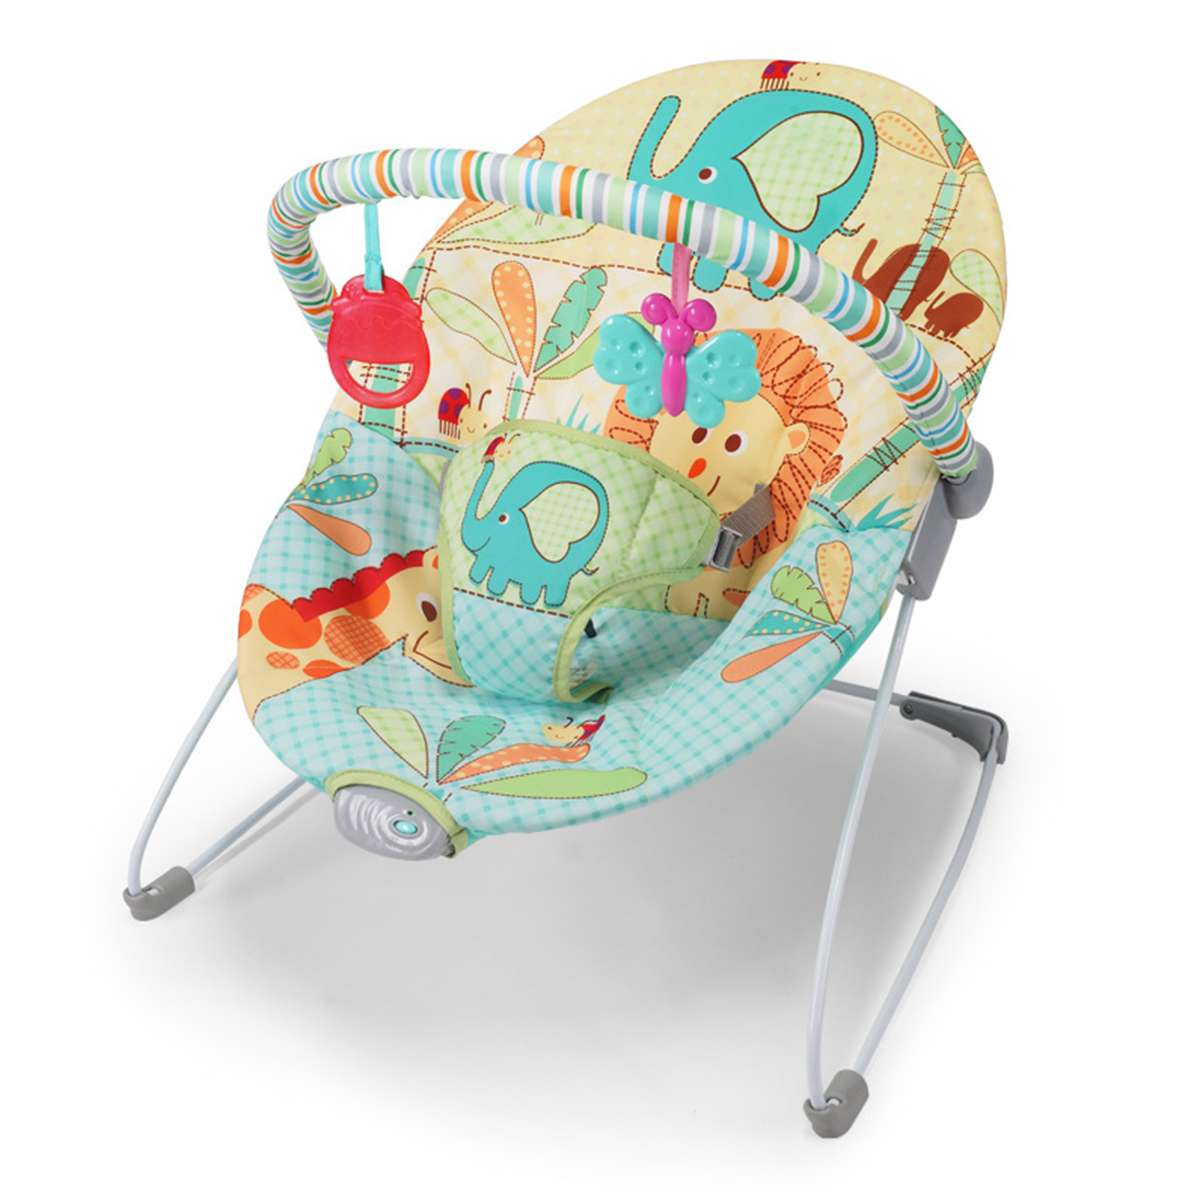 Sleeping Artifact Baby Rocking Chair Recliner Swing Comfort Chair Baby Cradle Bed Chair Vibration Child Baby Sleeping Artifact Baby Rocking Chair Recliner Swing Comfort Chair Baby Cradle Bed Chair Vibration Child Baby Shake Vibration